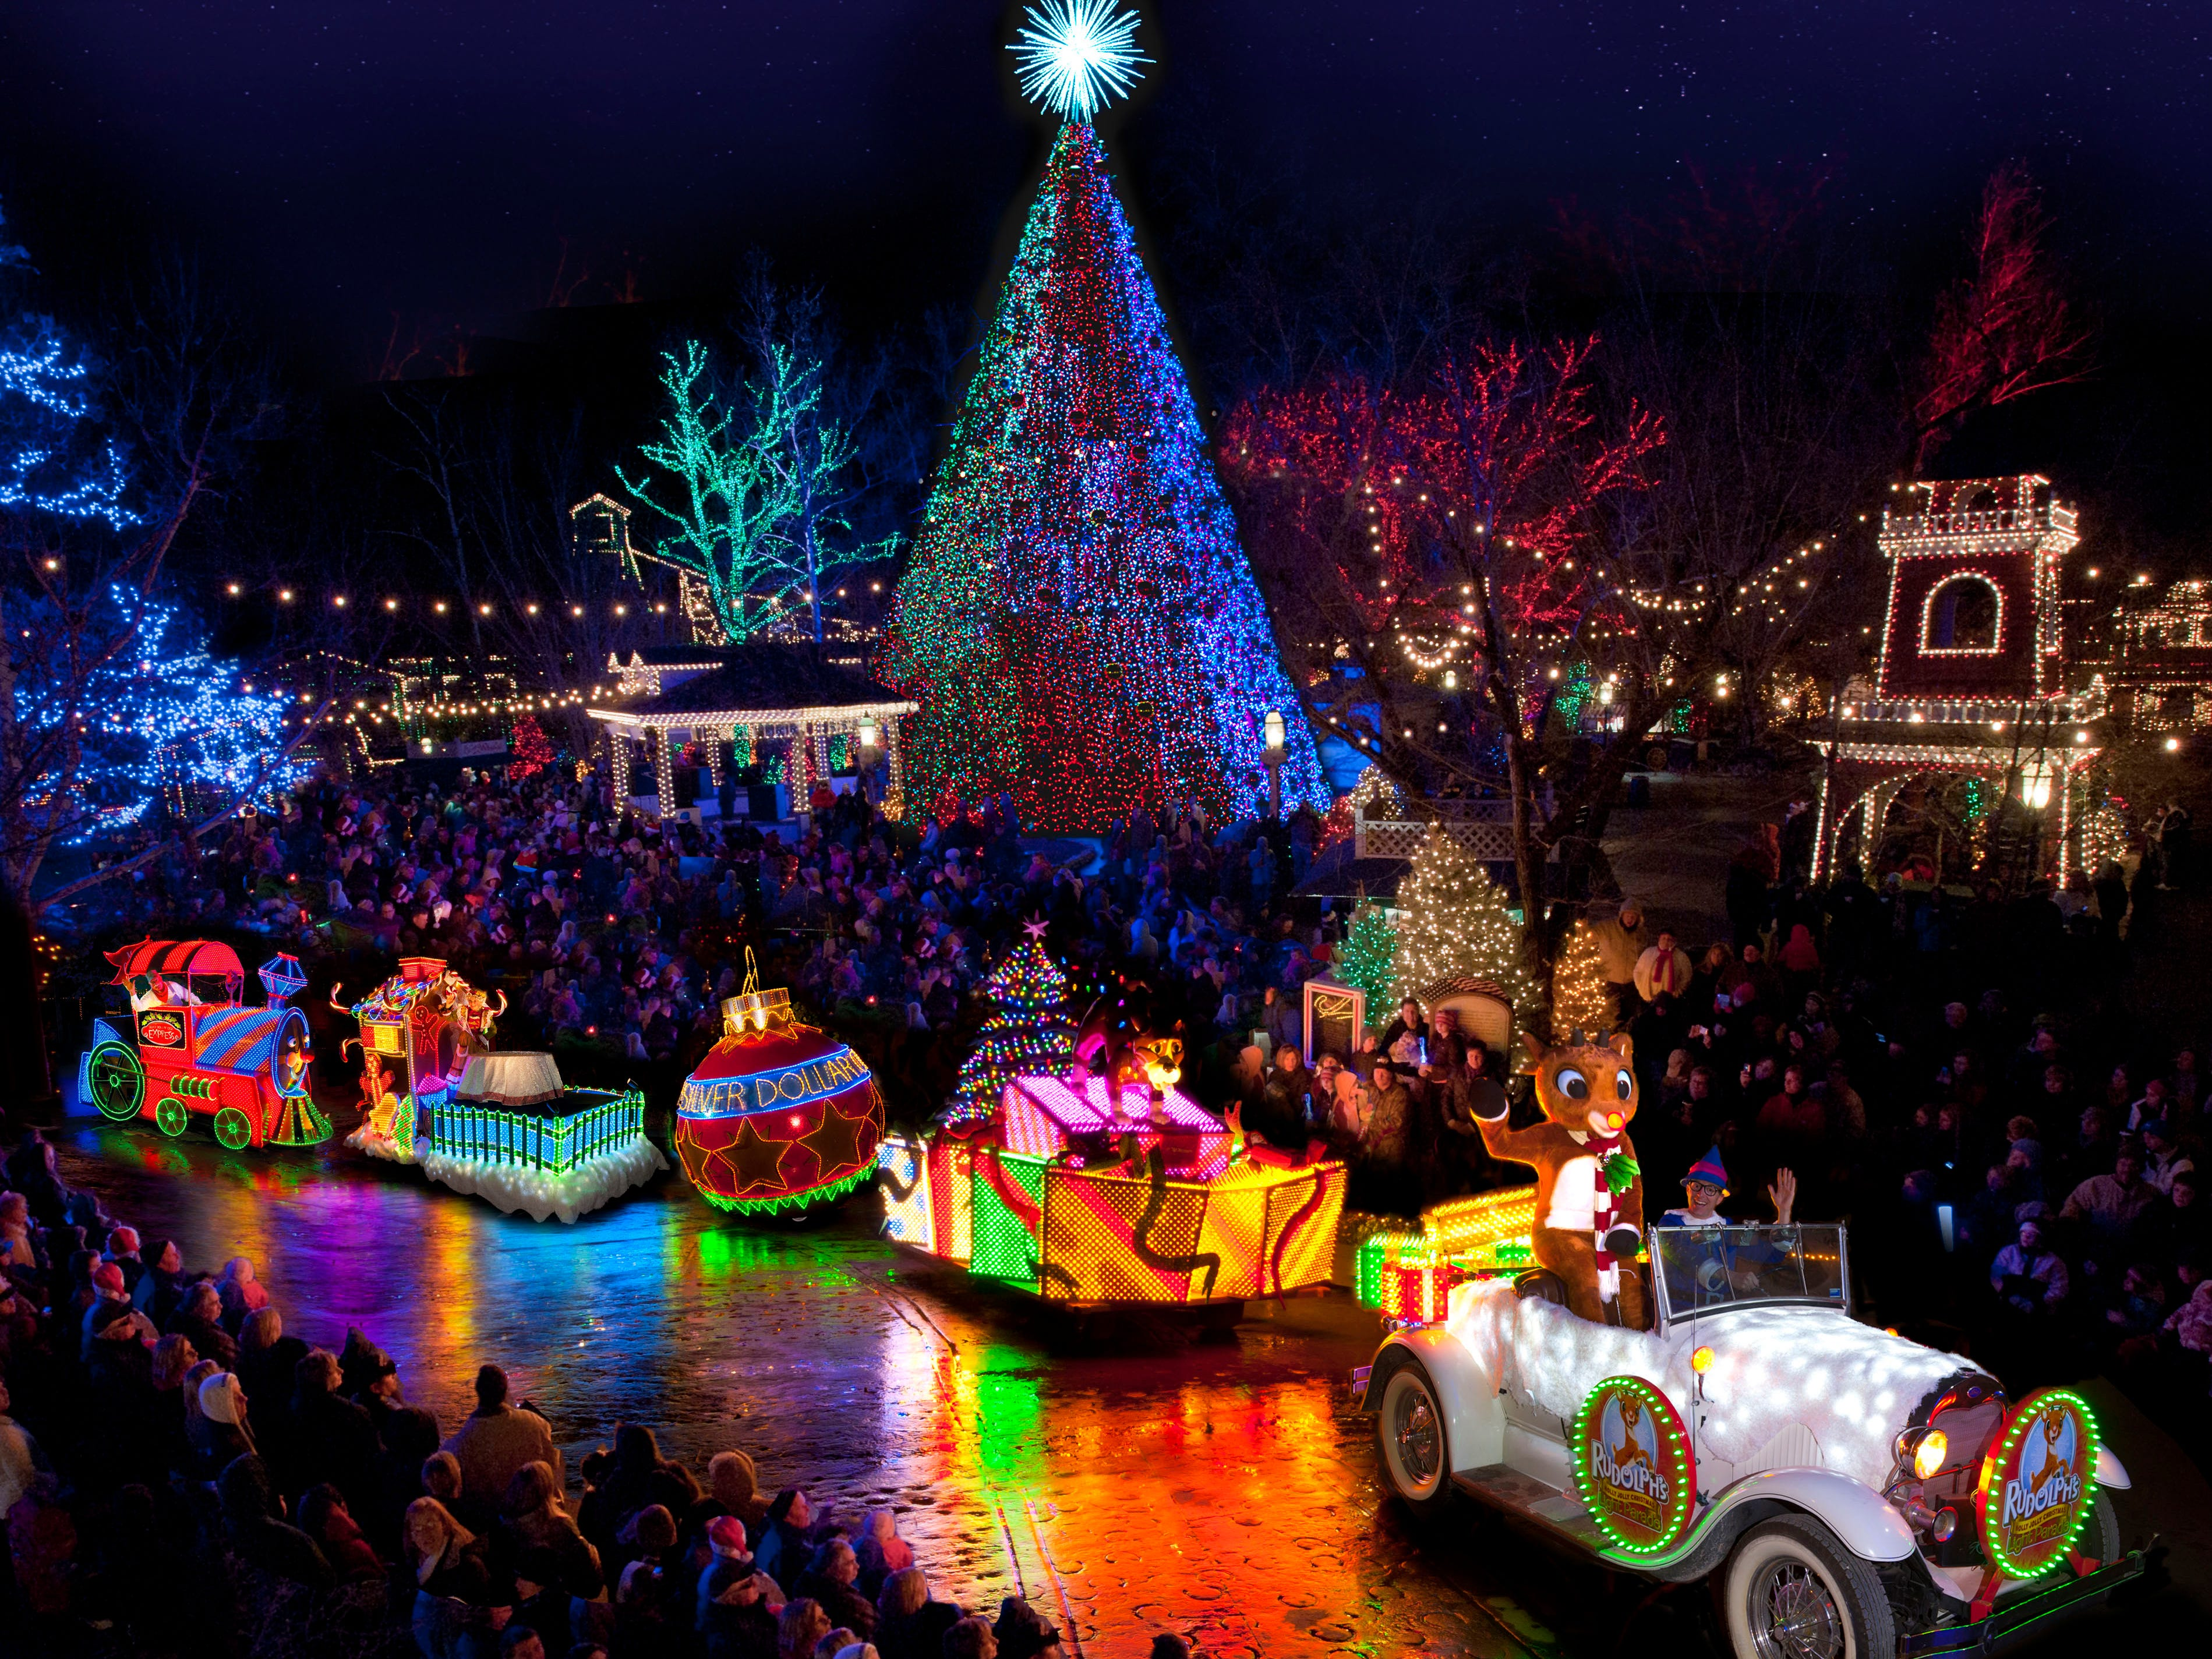 """Twice each evening, the Holly Jolly Light Parade, which features characters and illuminated floats from the beloved stop-motion TV show """"Rudolph the Red-Nosed Reindeer,"""" proceeds around the park and past a 50-foot Christmas tree."""